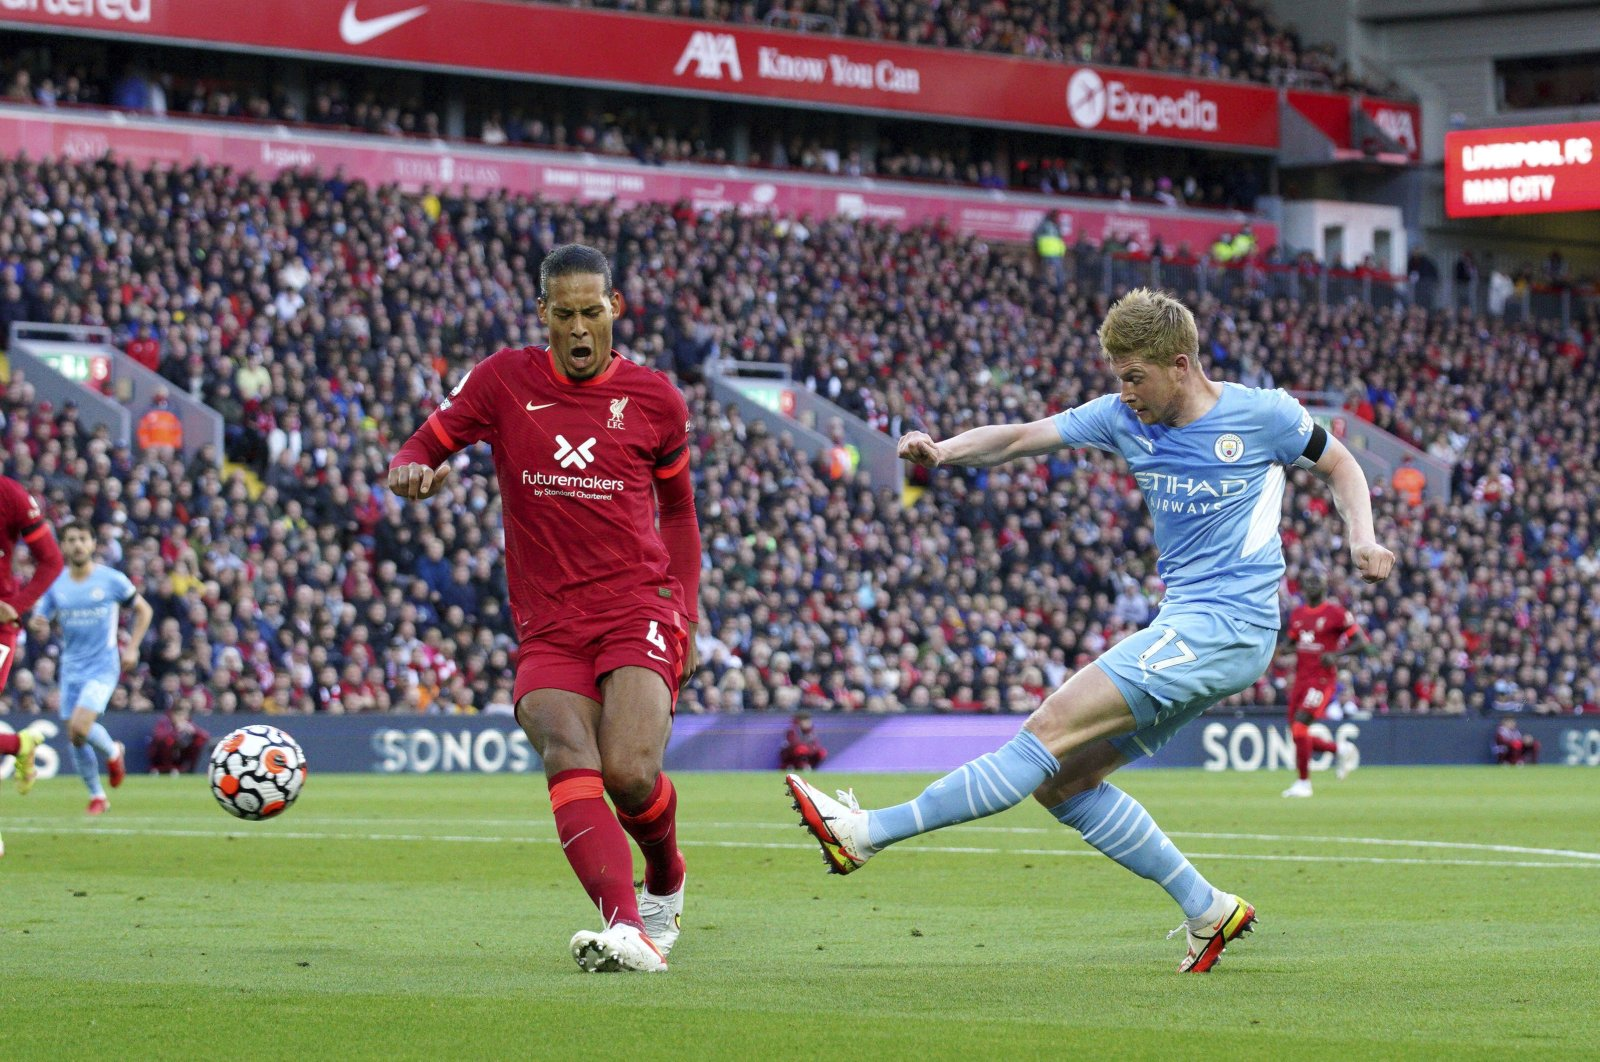 Manchester City's Kevin De Bruyne (R) shoots at goal during a Premier League match against Liverpool, at Anfield stadium, Liverpool, England, Oct. 3, 2021. (AP Photo)